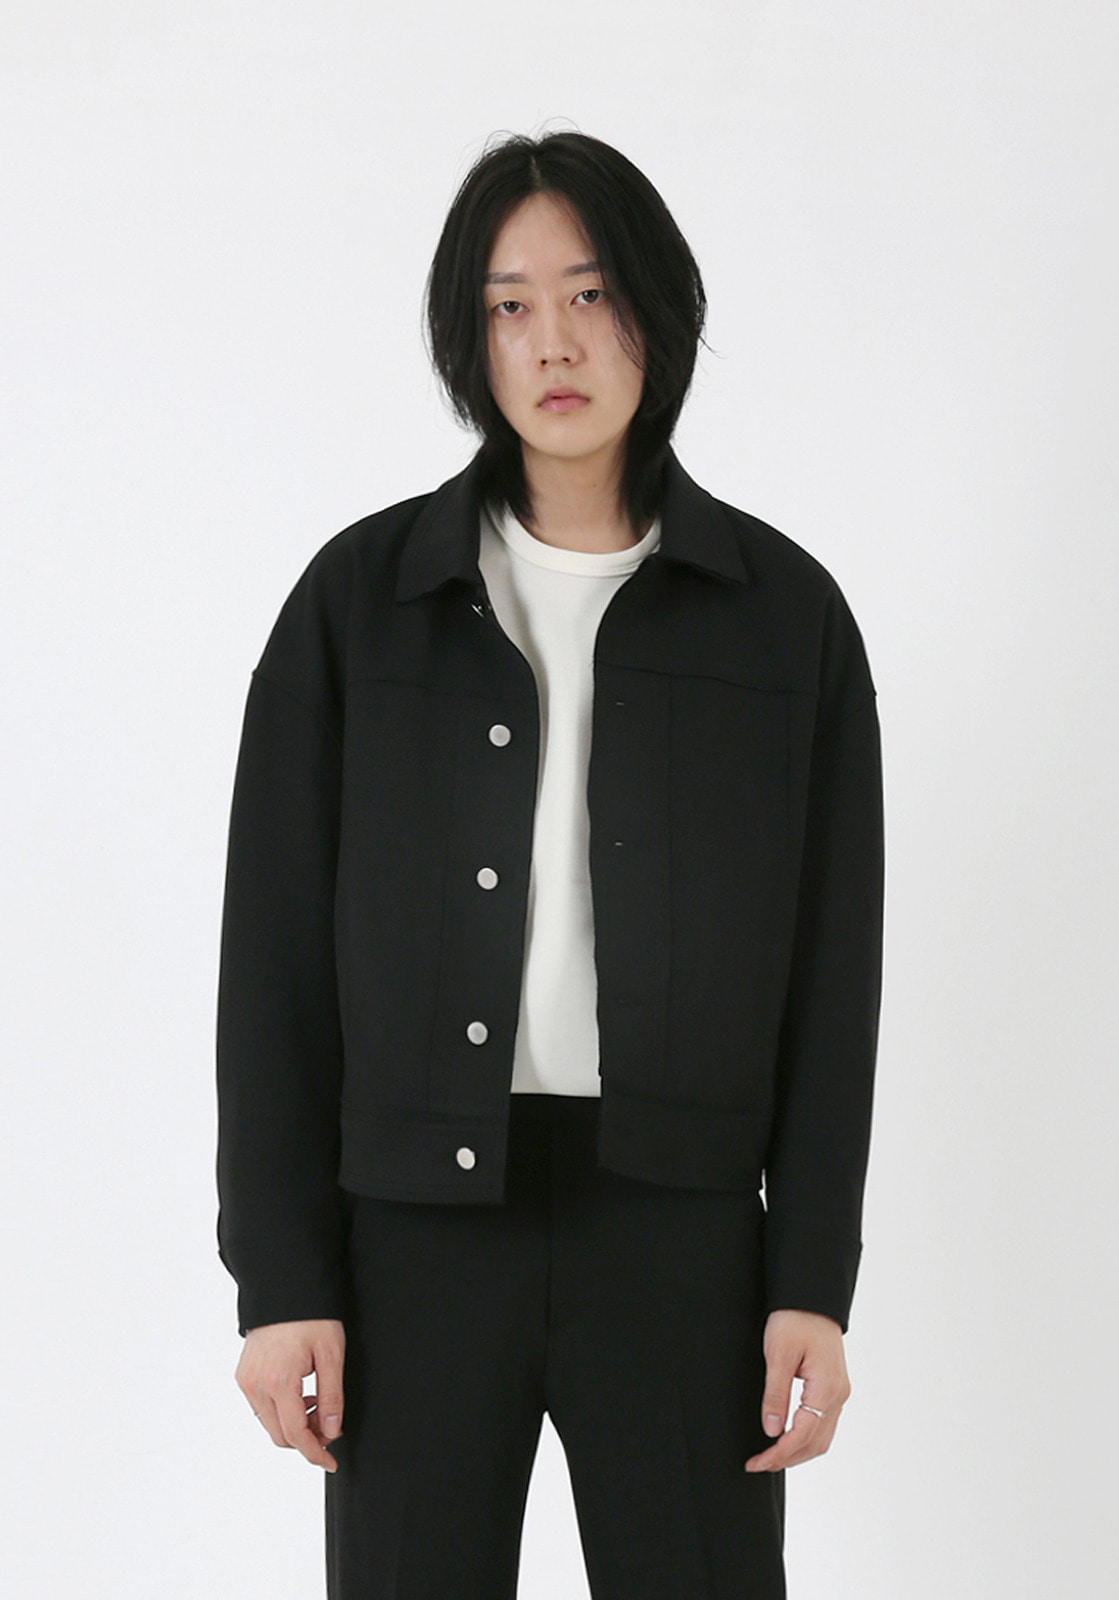 V664 MOROS CUTTING JACKET  BLACK